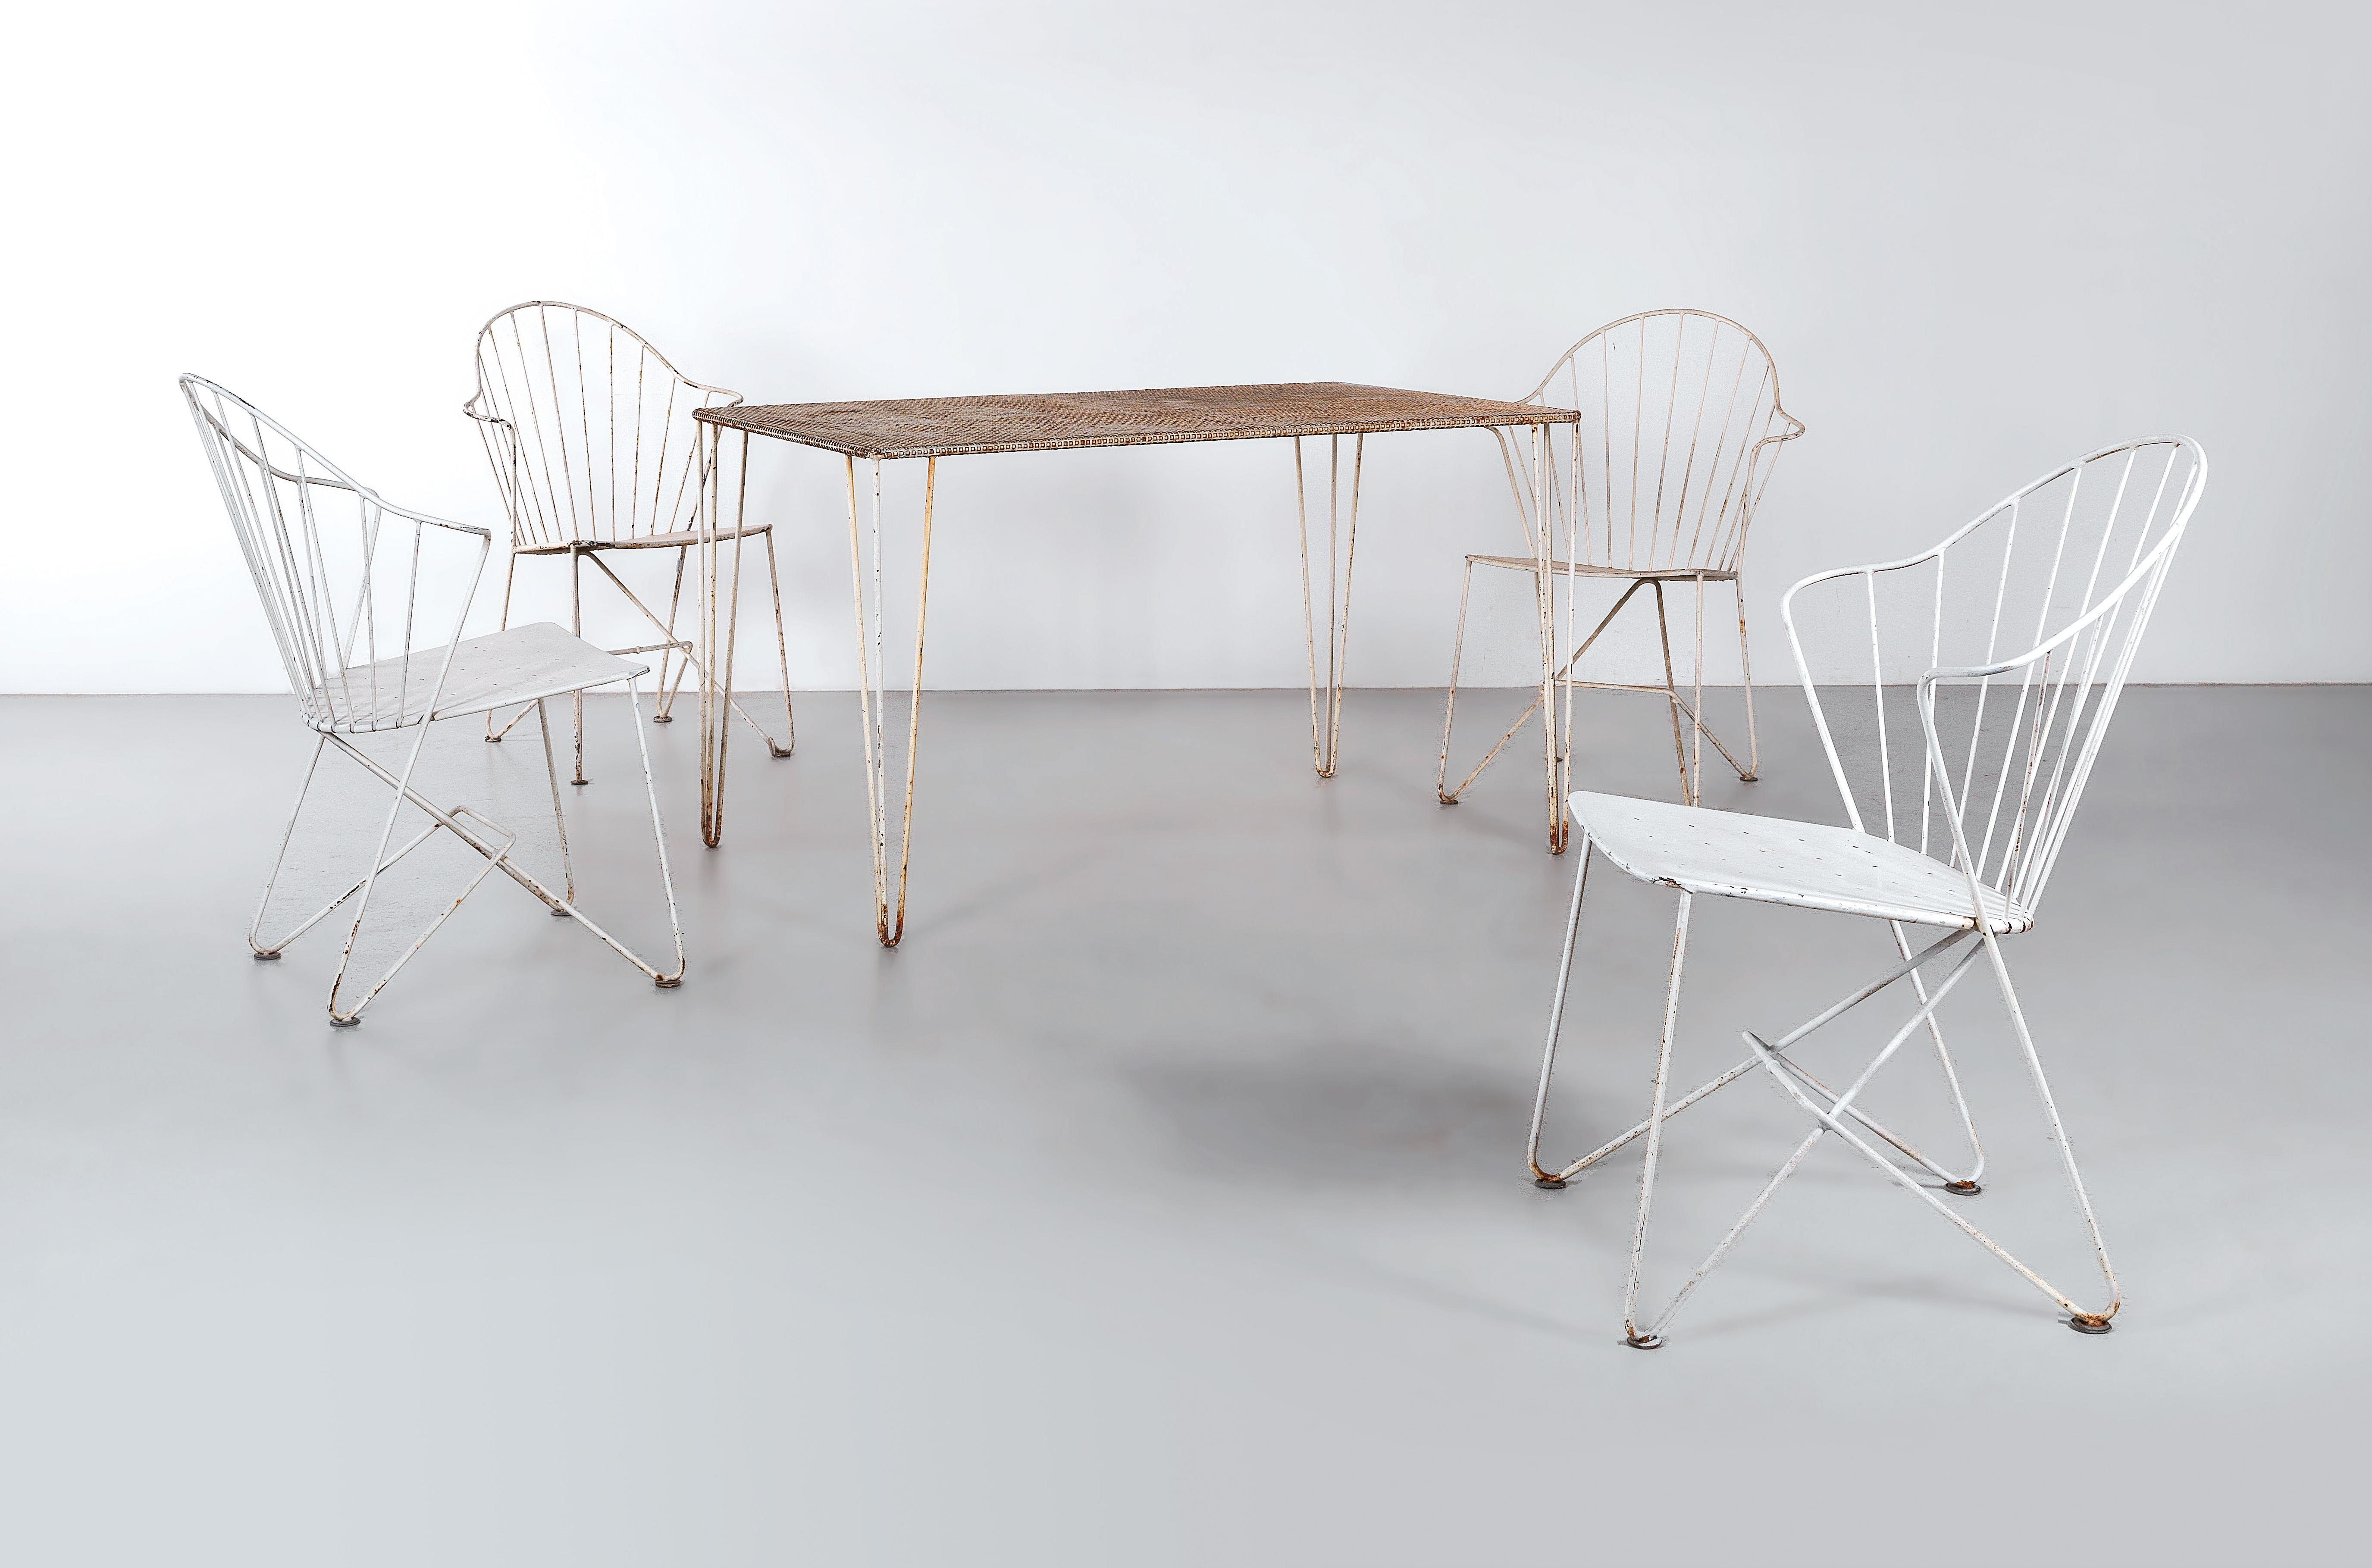 a suite of furniture from the sonett series designed by the architects j o